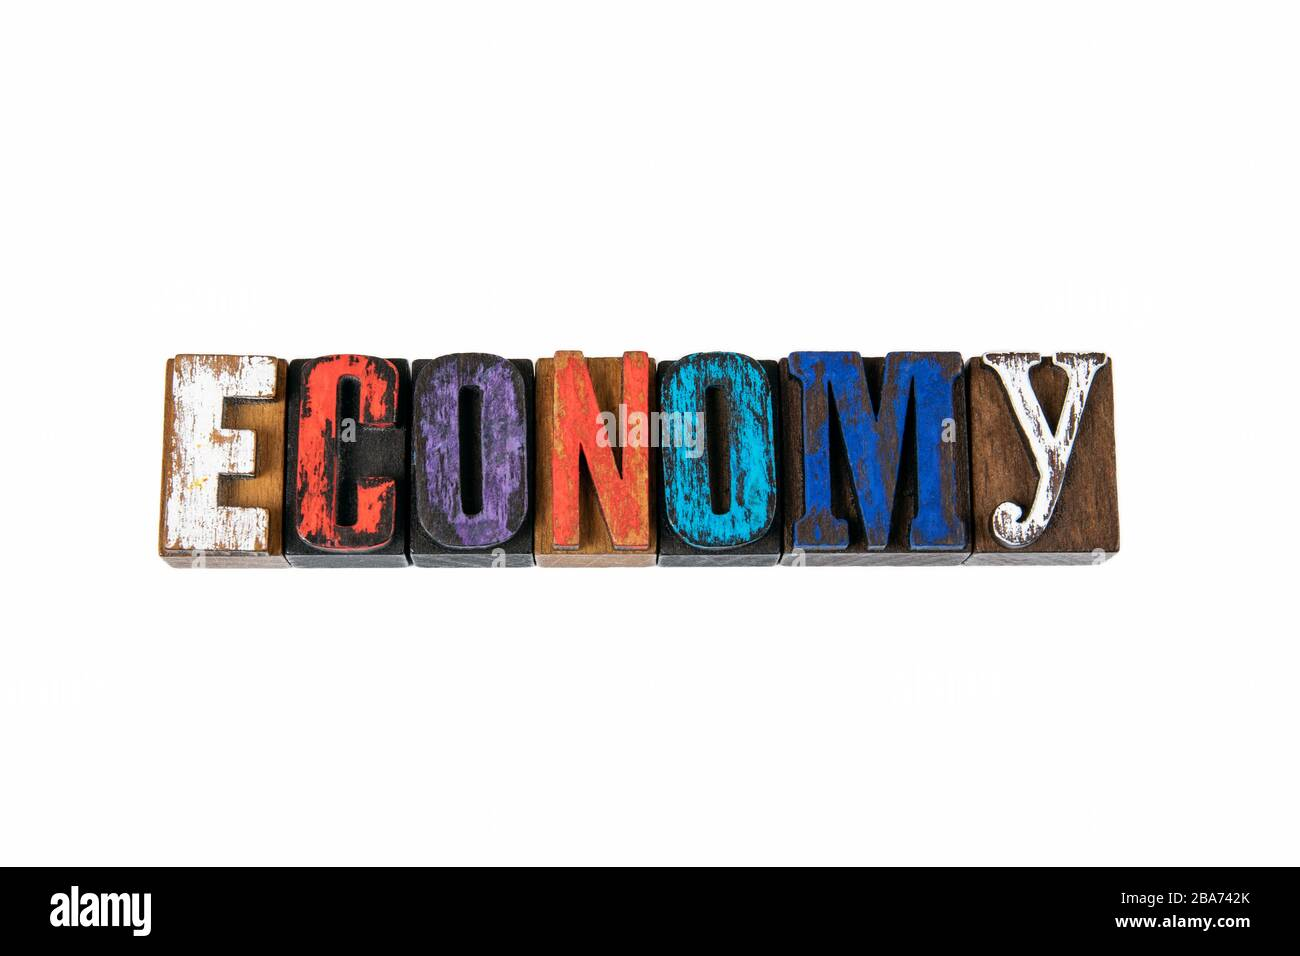 Economy. Development, Planning, Growth or Recession Concept. Colored wooden letters on a white background Stock Photo